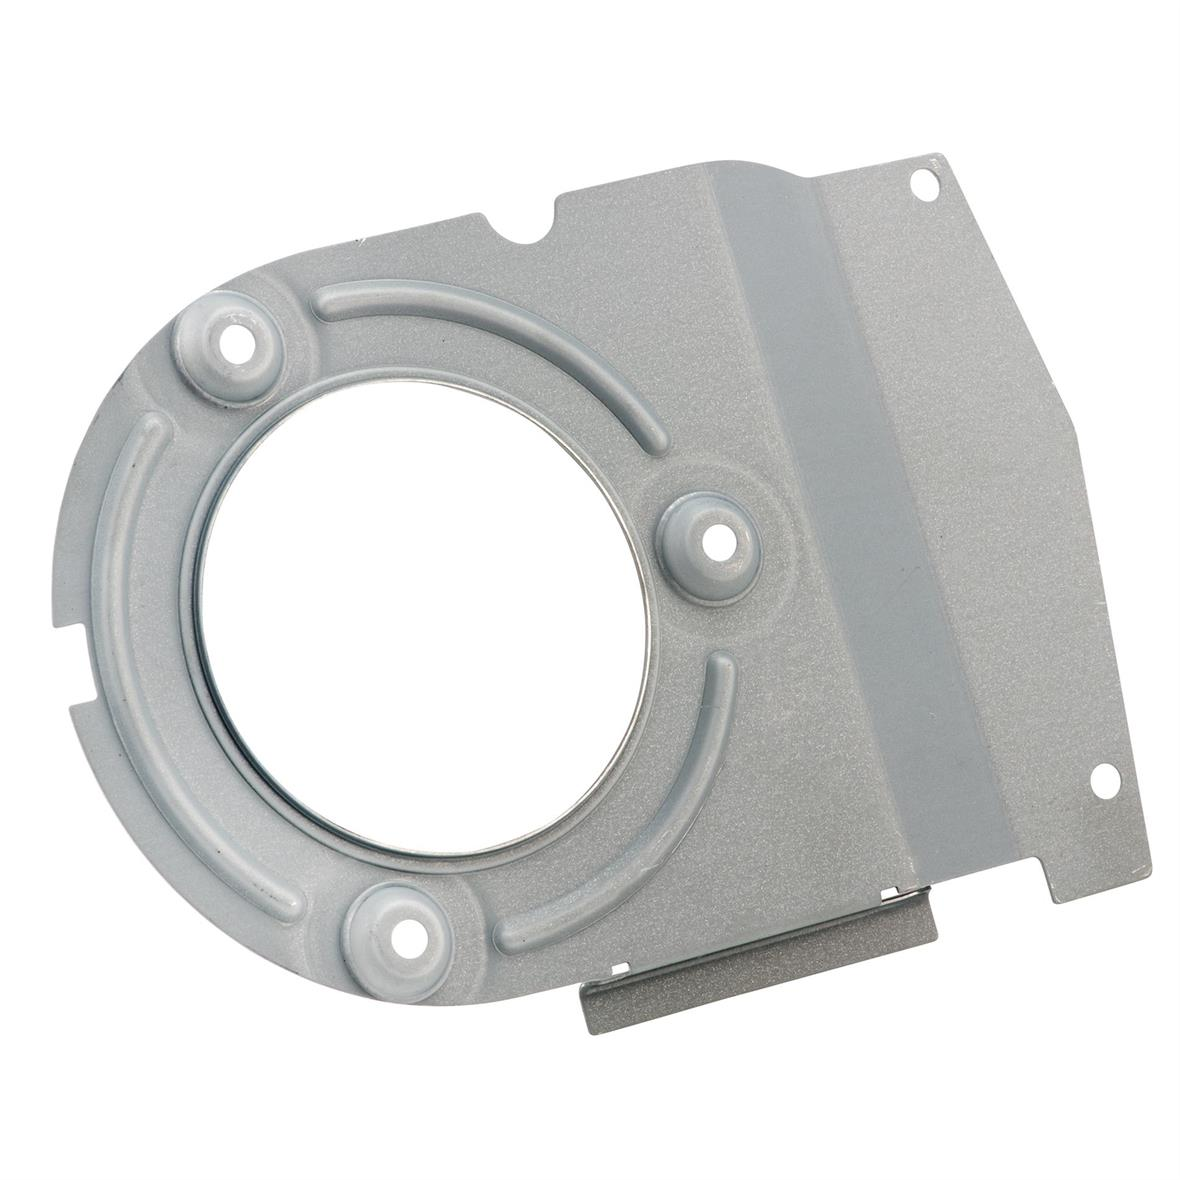 Product Image for 'Air Guide Plate PIAGGIO variator coverTitle'